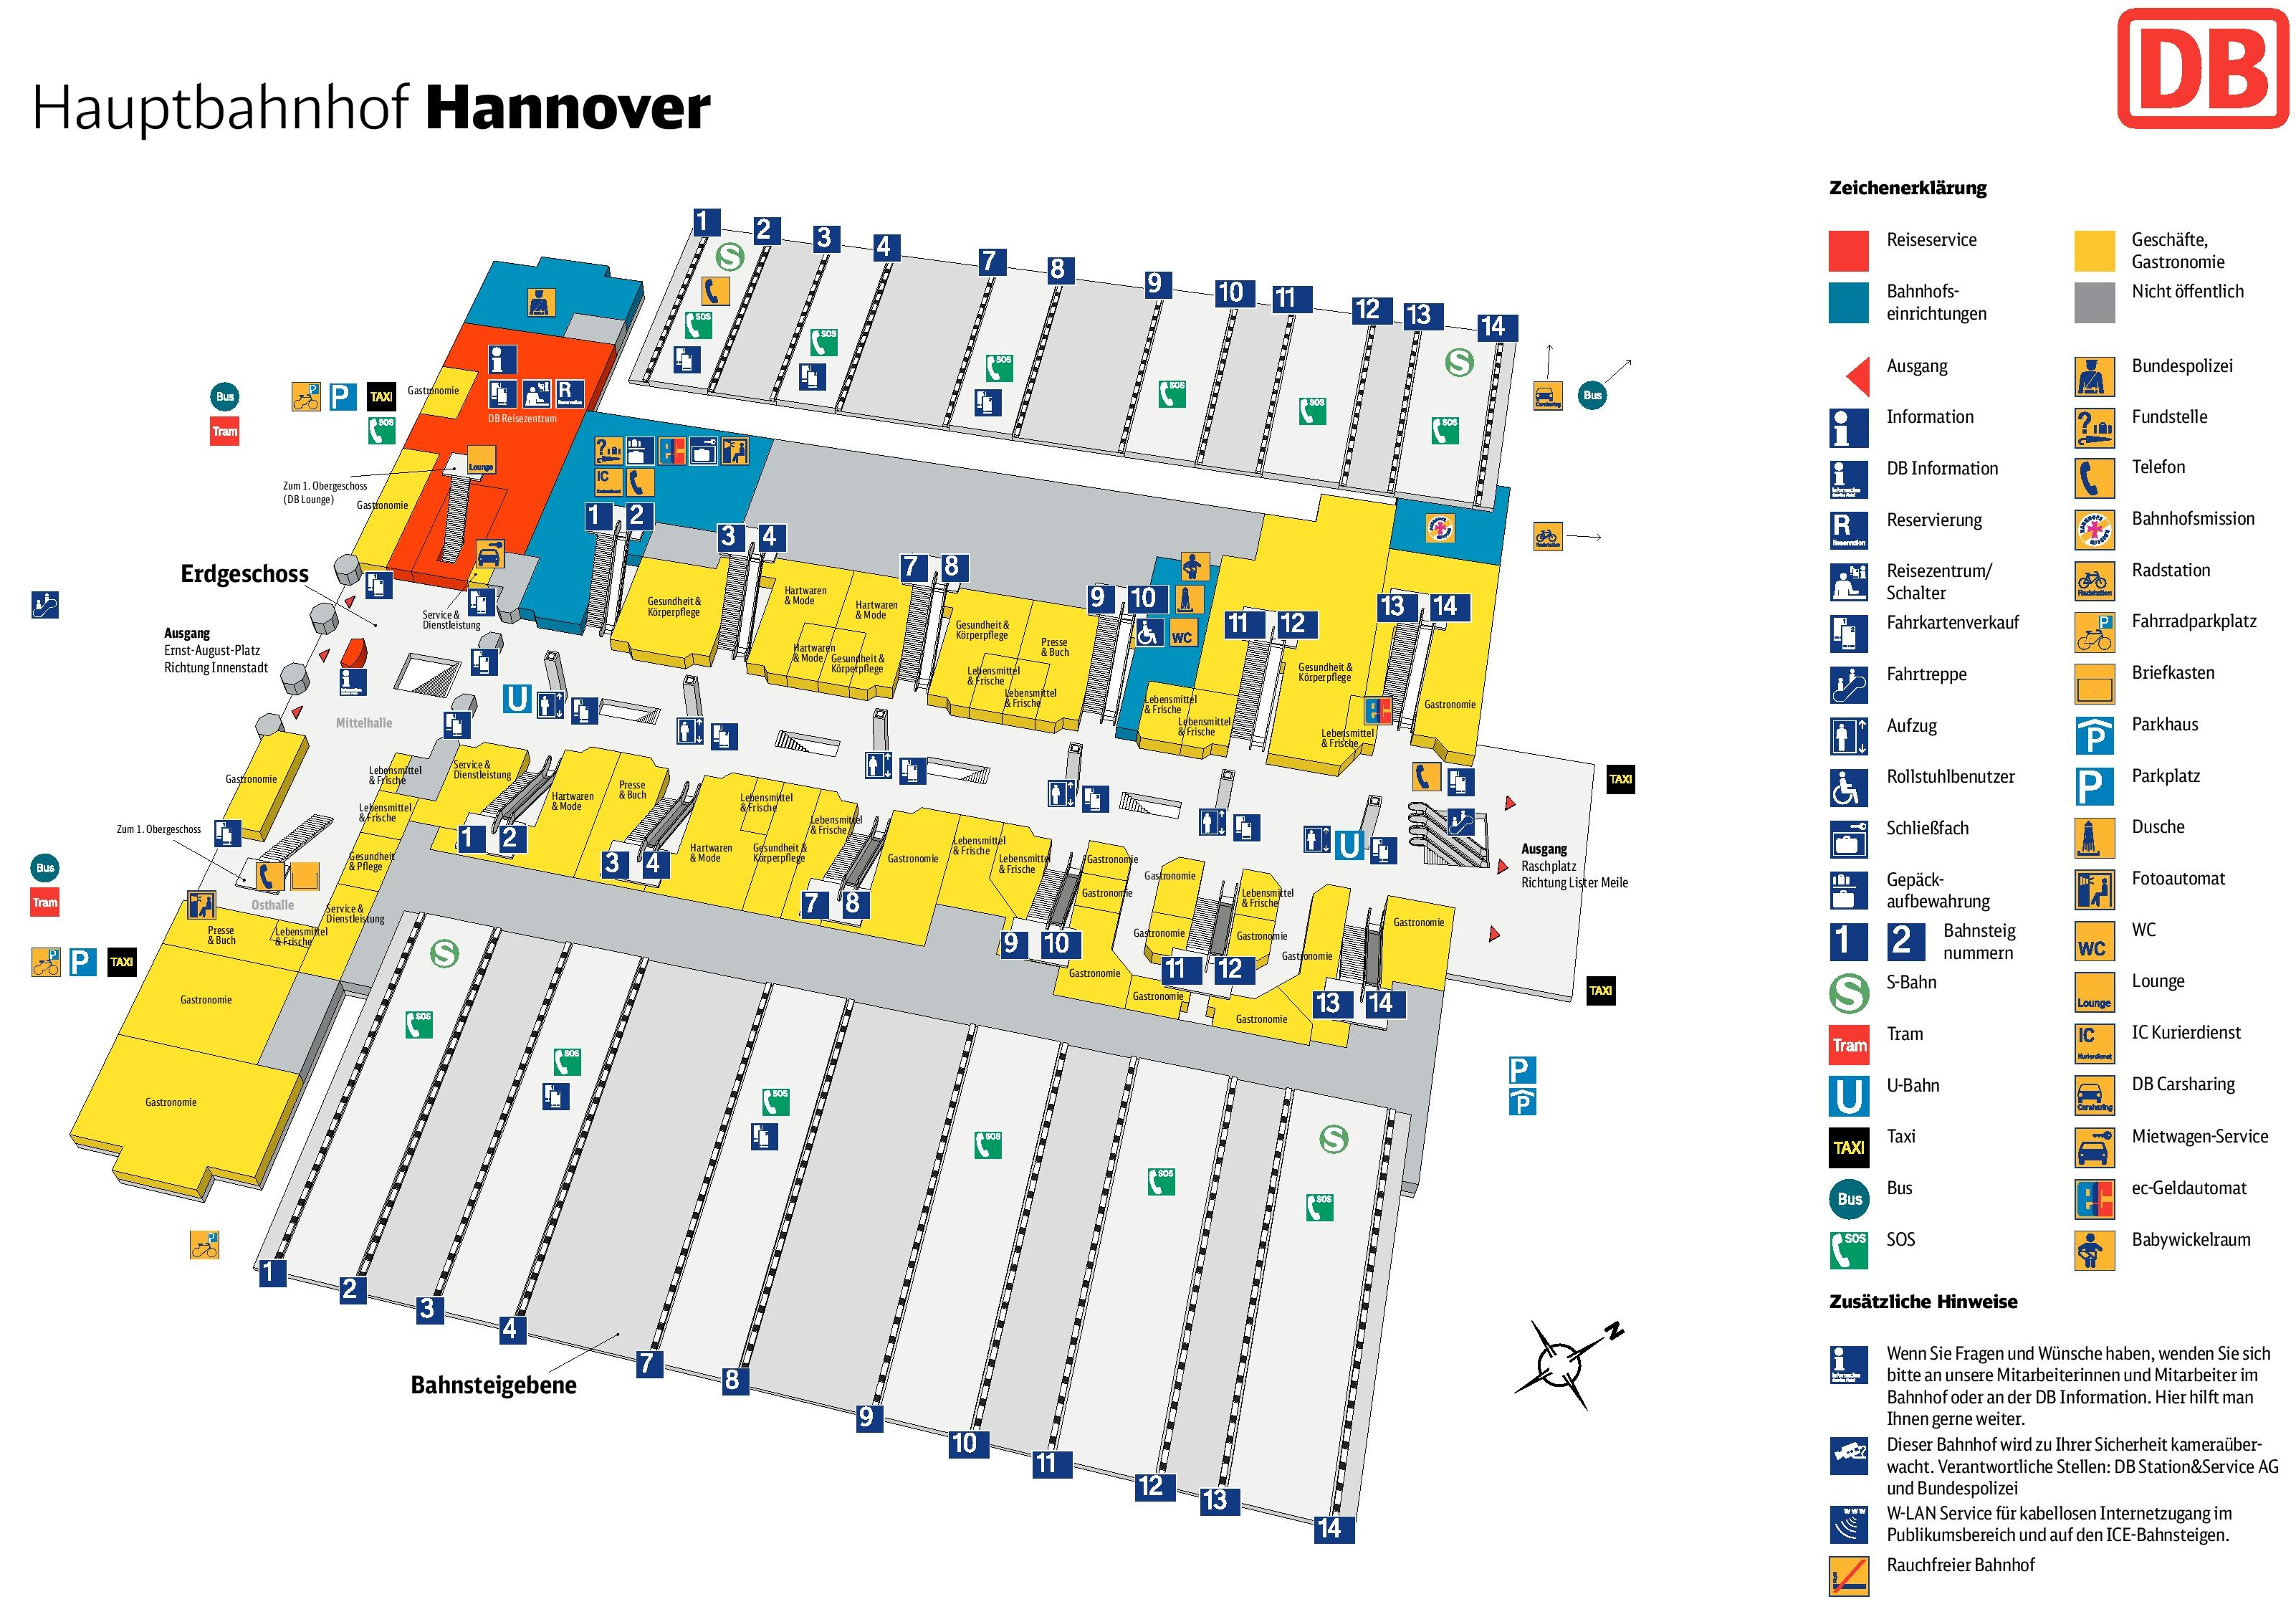 Train Station Map Hannover hauptbahnhof map (central train station) Train Station Map